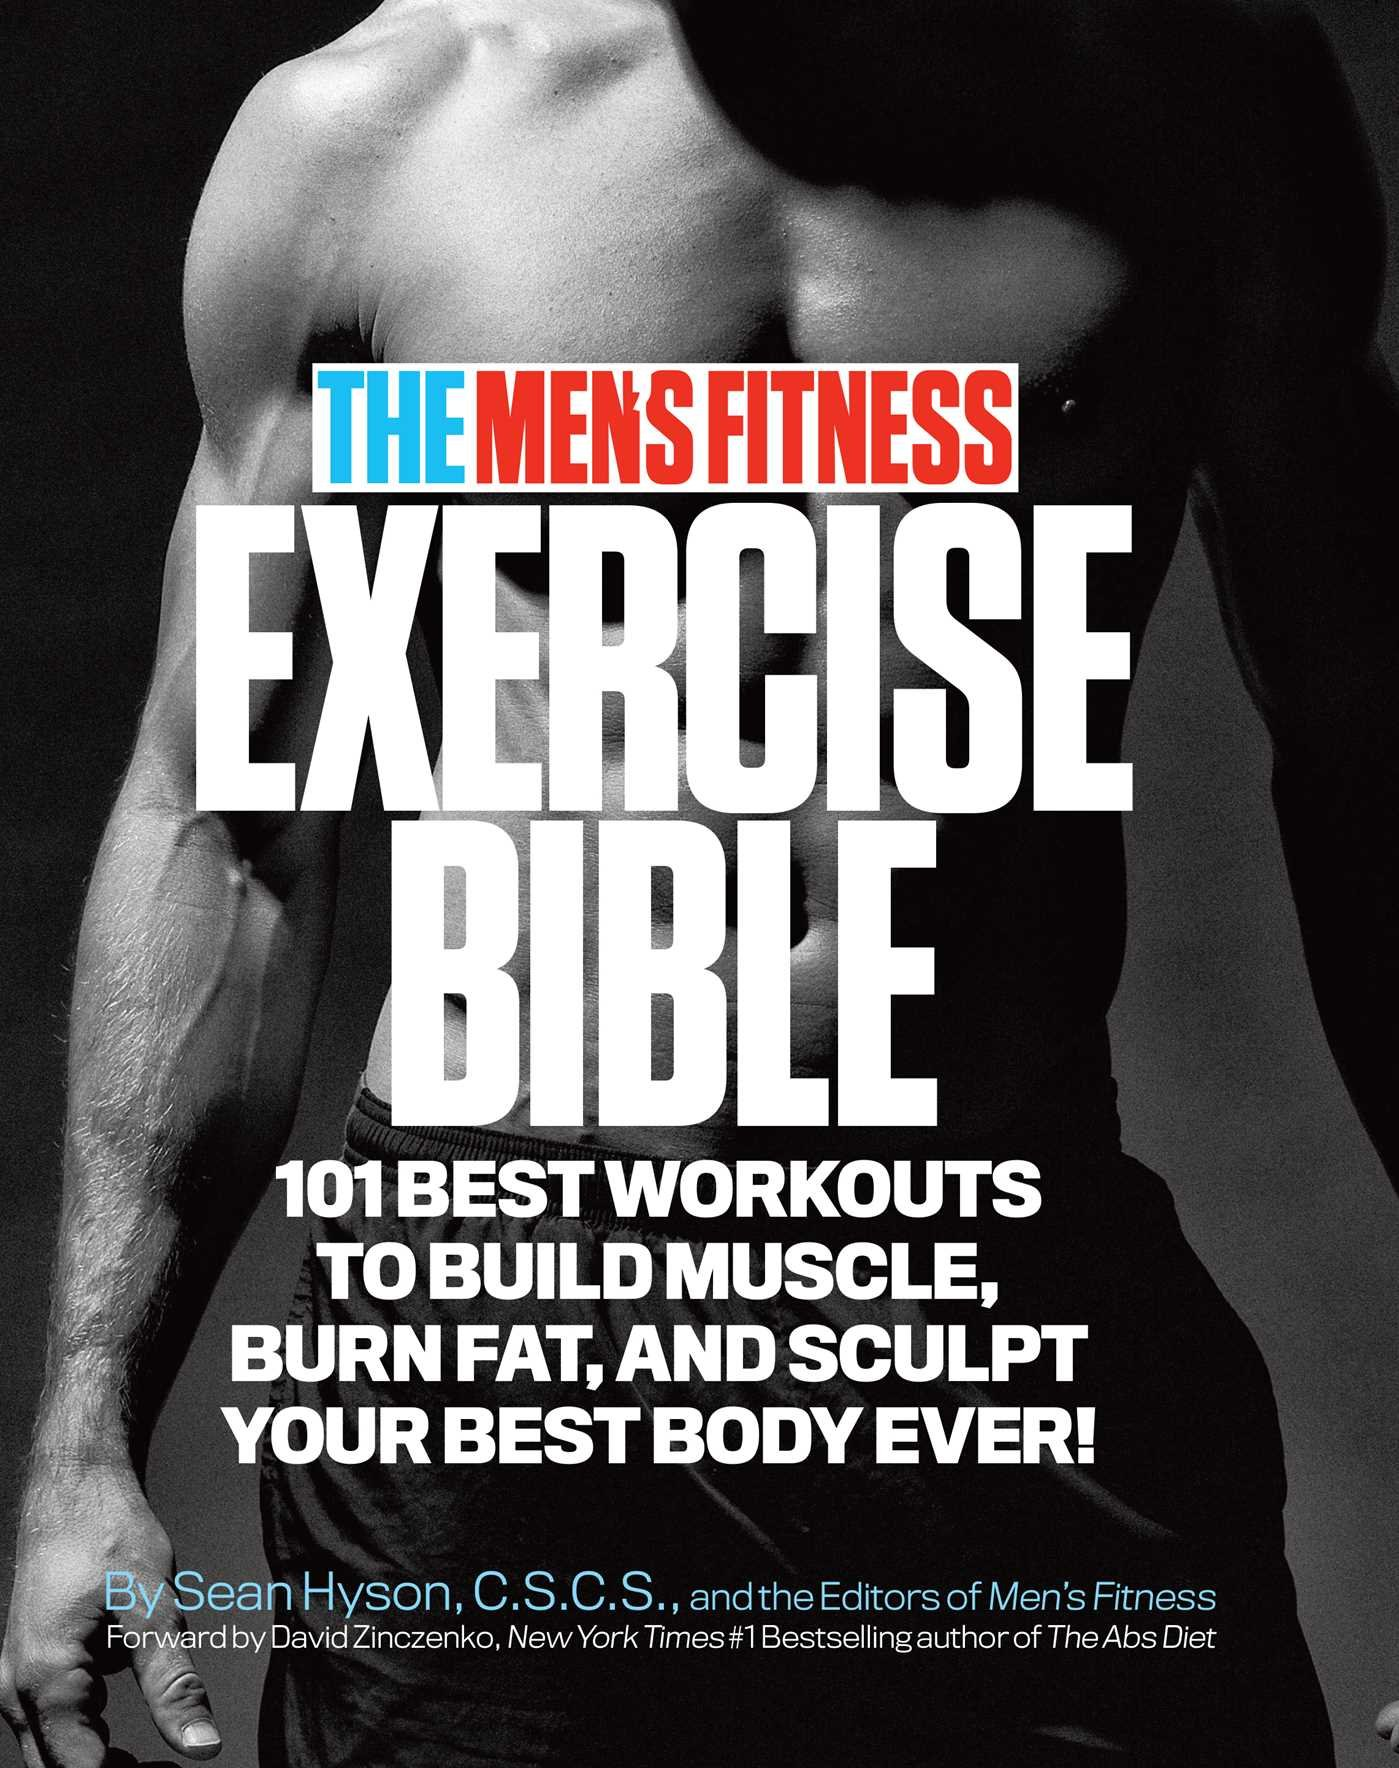 The Mens Fitness Exercise Bible 101 Best Workouts To Build Muscle Burn Fat And Sculpt Your Body Ever Sean Hyson 9780989594011 Amazon Books